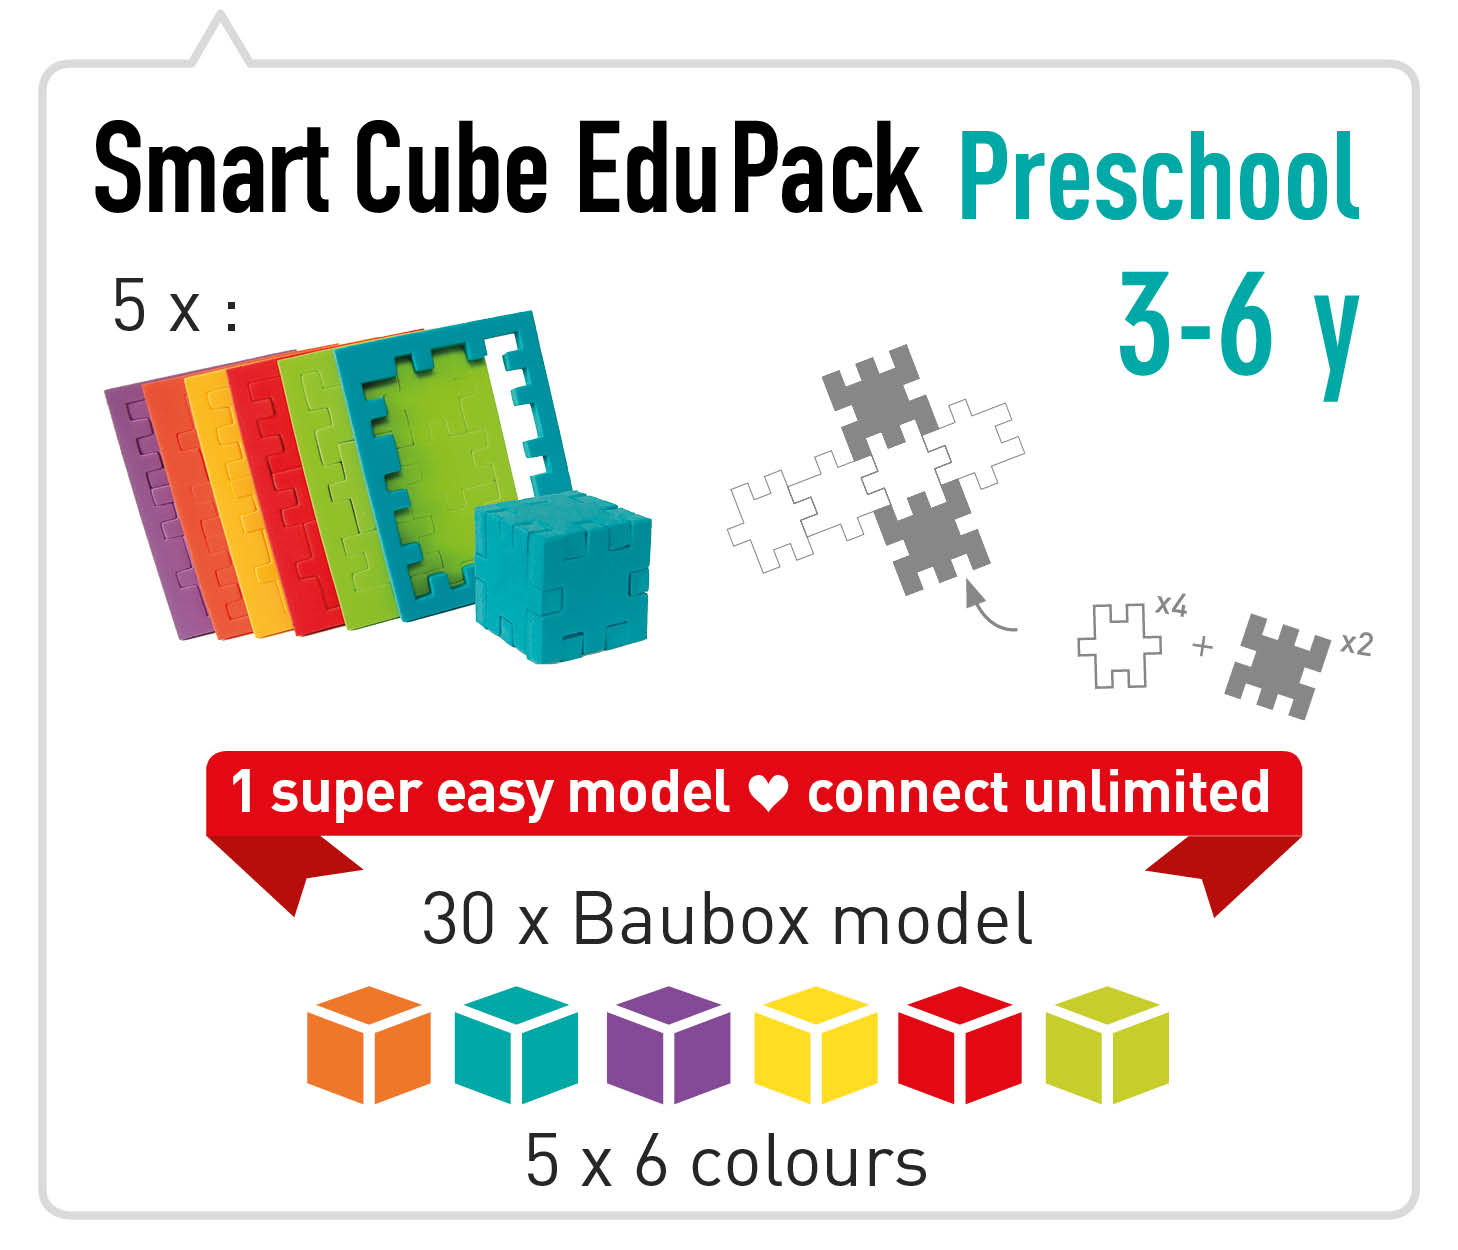 Smart Cube EduPack Product info